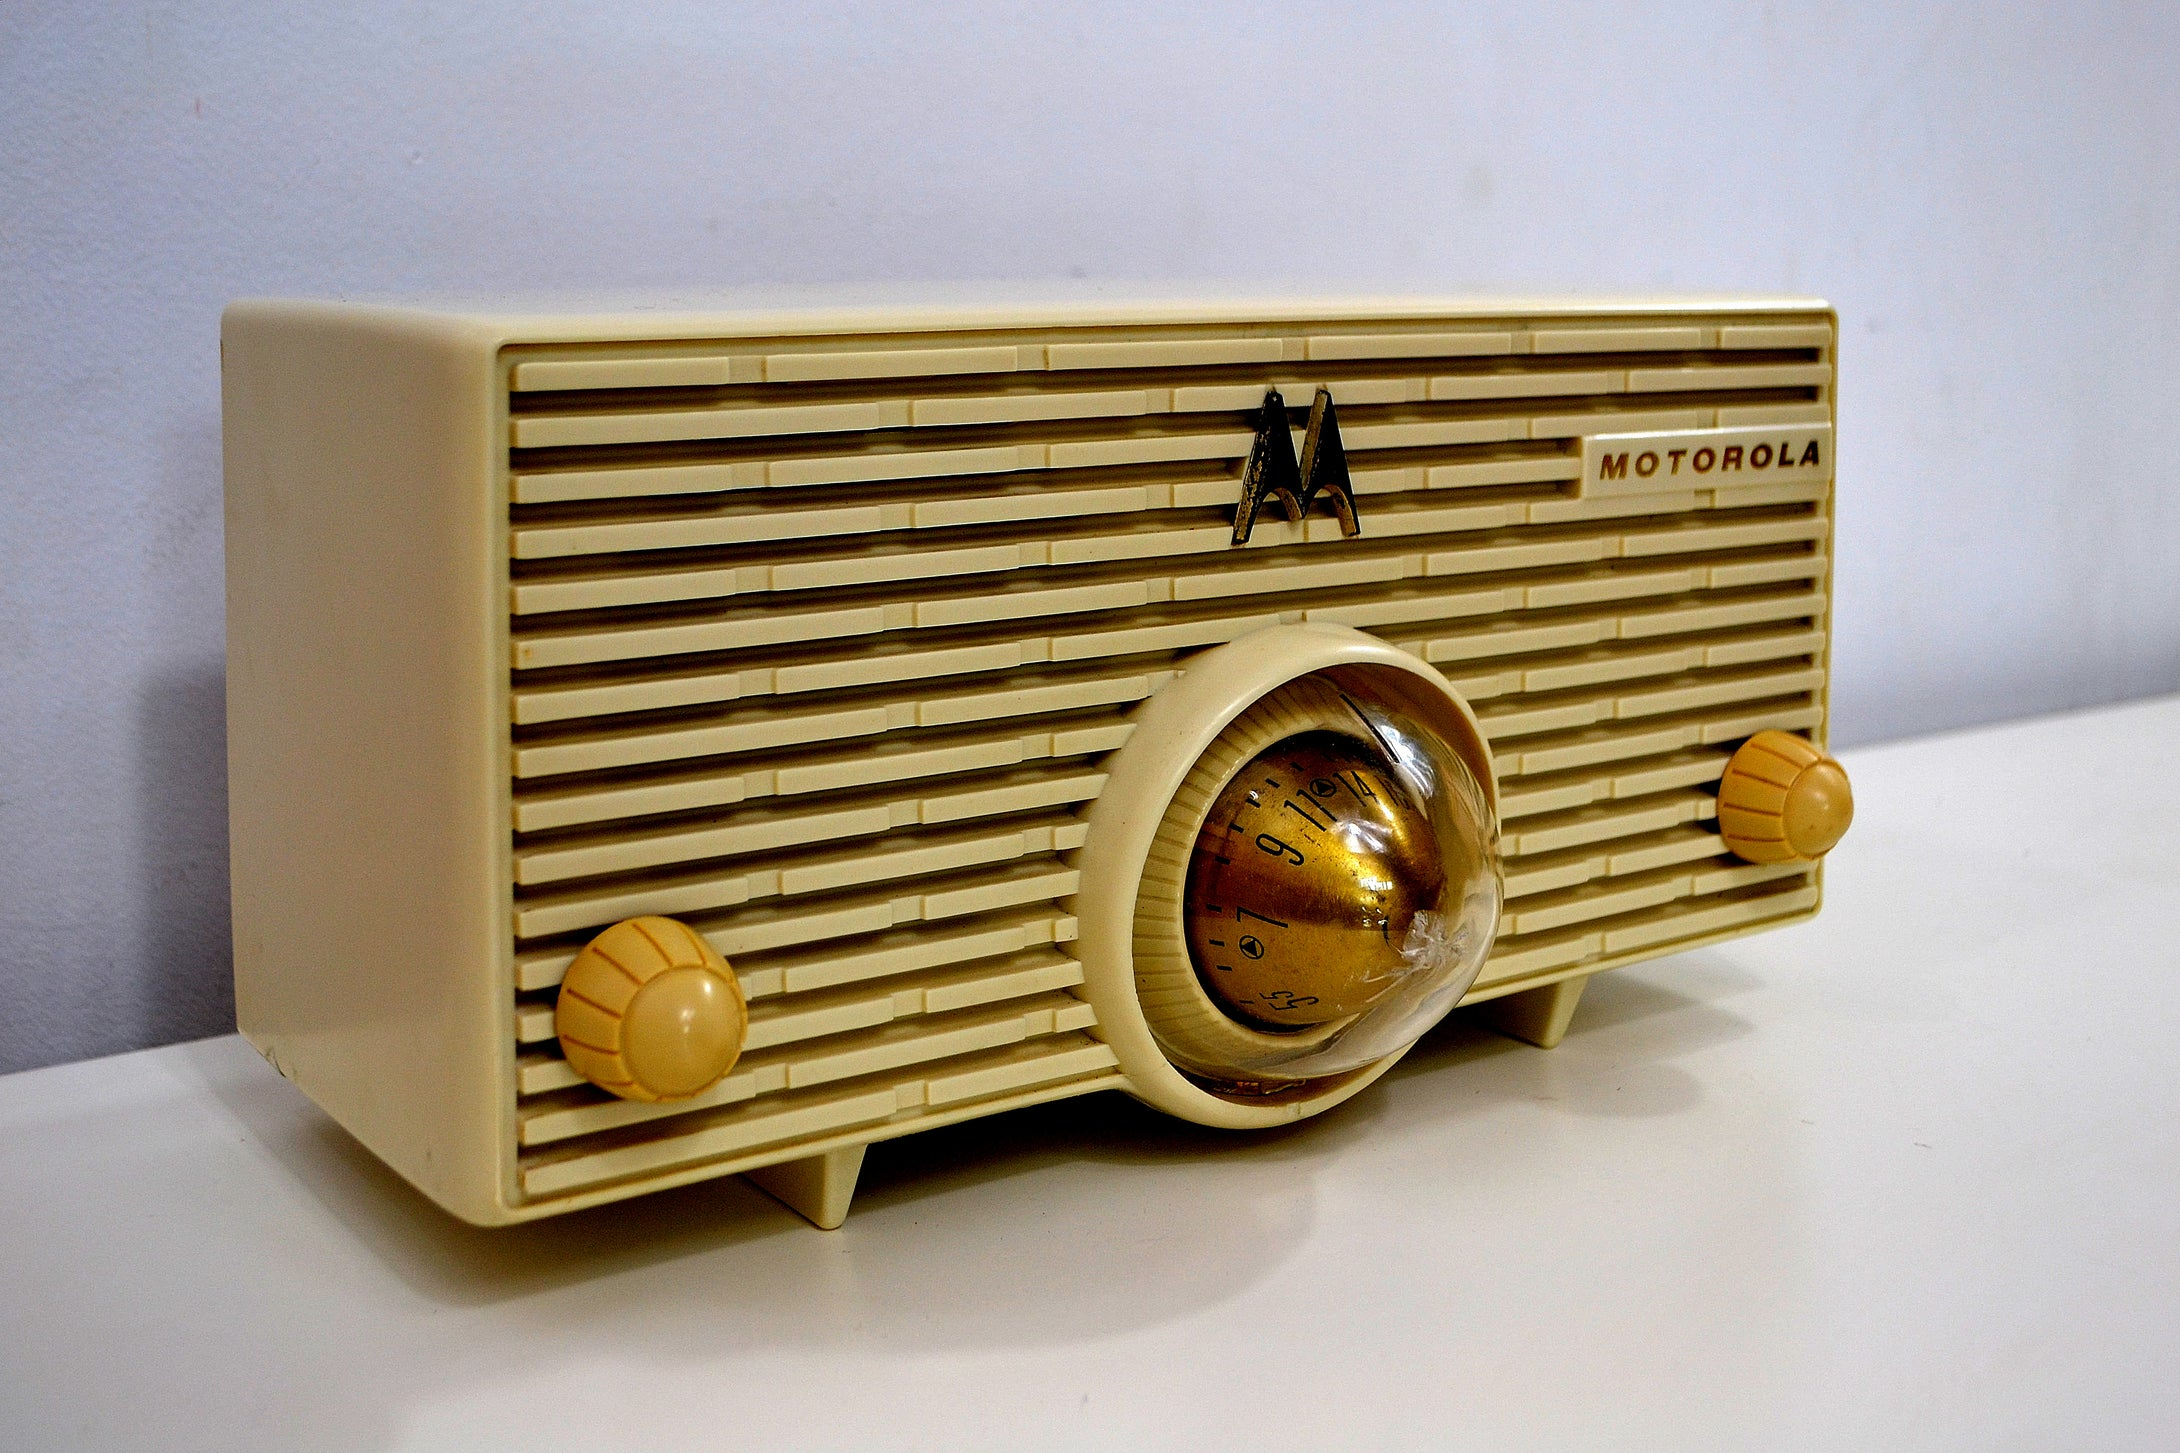 Cream Ivory 1957 Motorola Model MK-56H Turbine Vintage Tube AM Radio Collectors Favorite! - [product_type} - Motorola - Retro Radio Farm